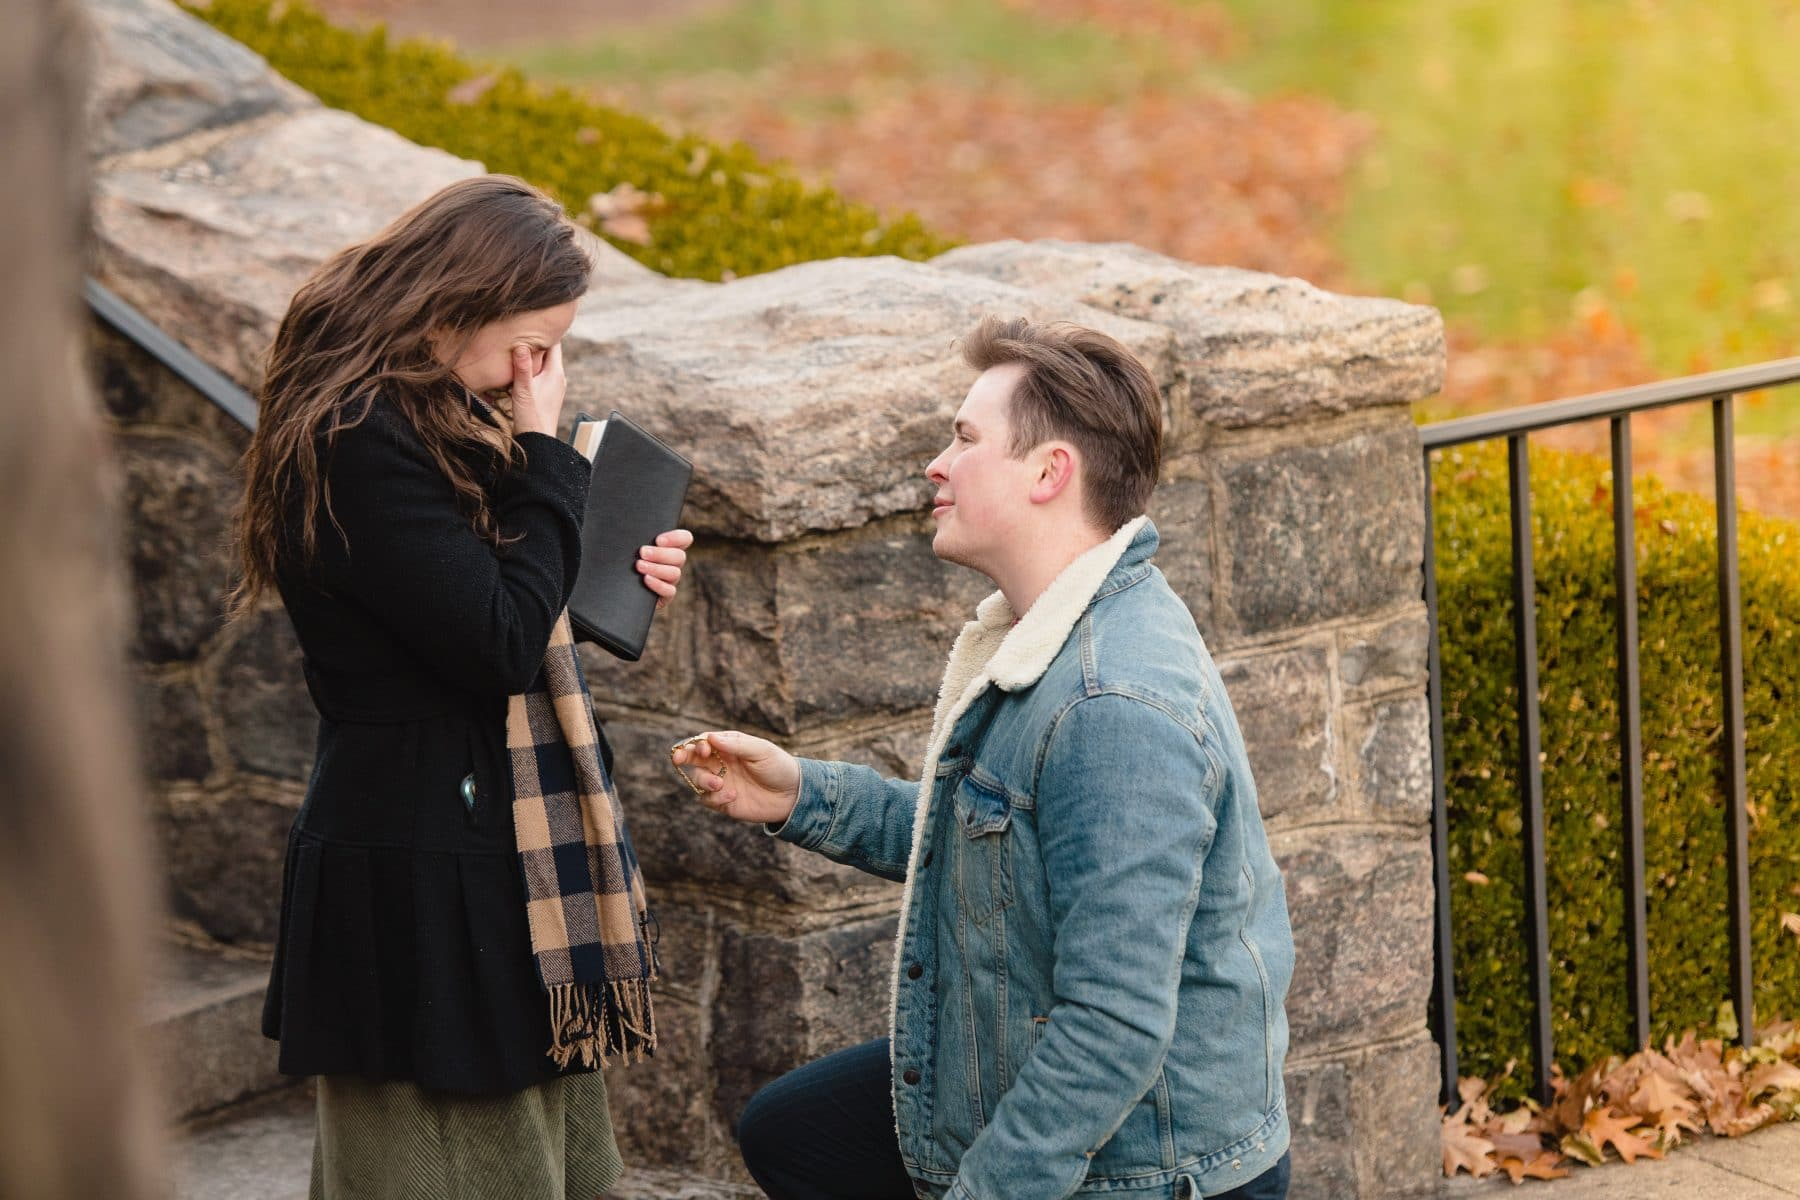 The girlfriend is crying when the boyfriend is on his knee proposing during Bronx Botanical Garden Surprise Proposal